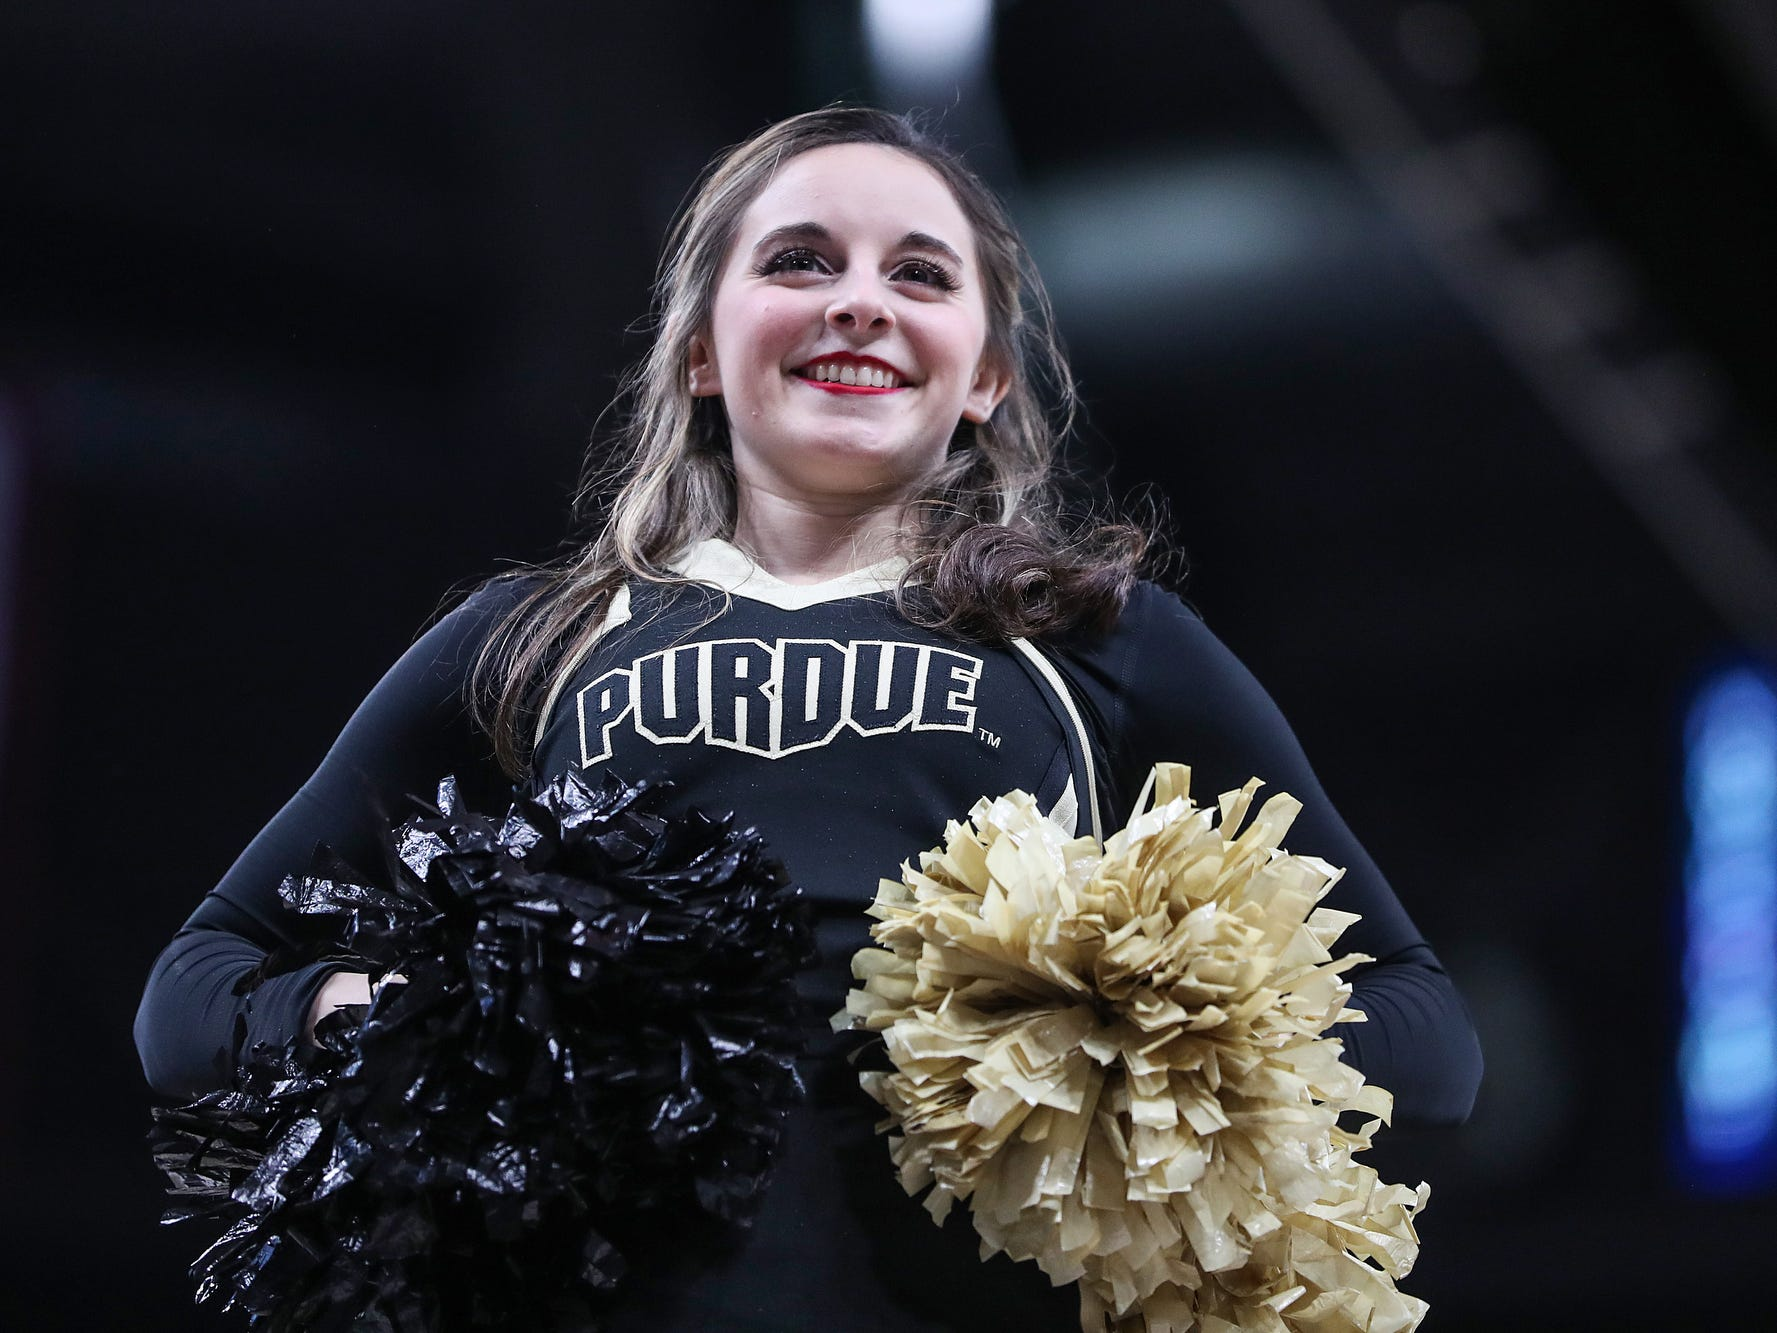 A Purdue Boilermakers cheerleader riles up the crowd in the second half of the Crossroads Classic game between Purdue and Notre Dame at Bankers Life Fieldhouse in Indiananpolis, Saturday, Dec. 15, 2018. Notre Dame won, 88-80.